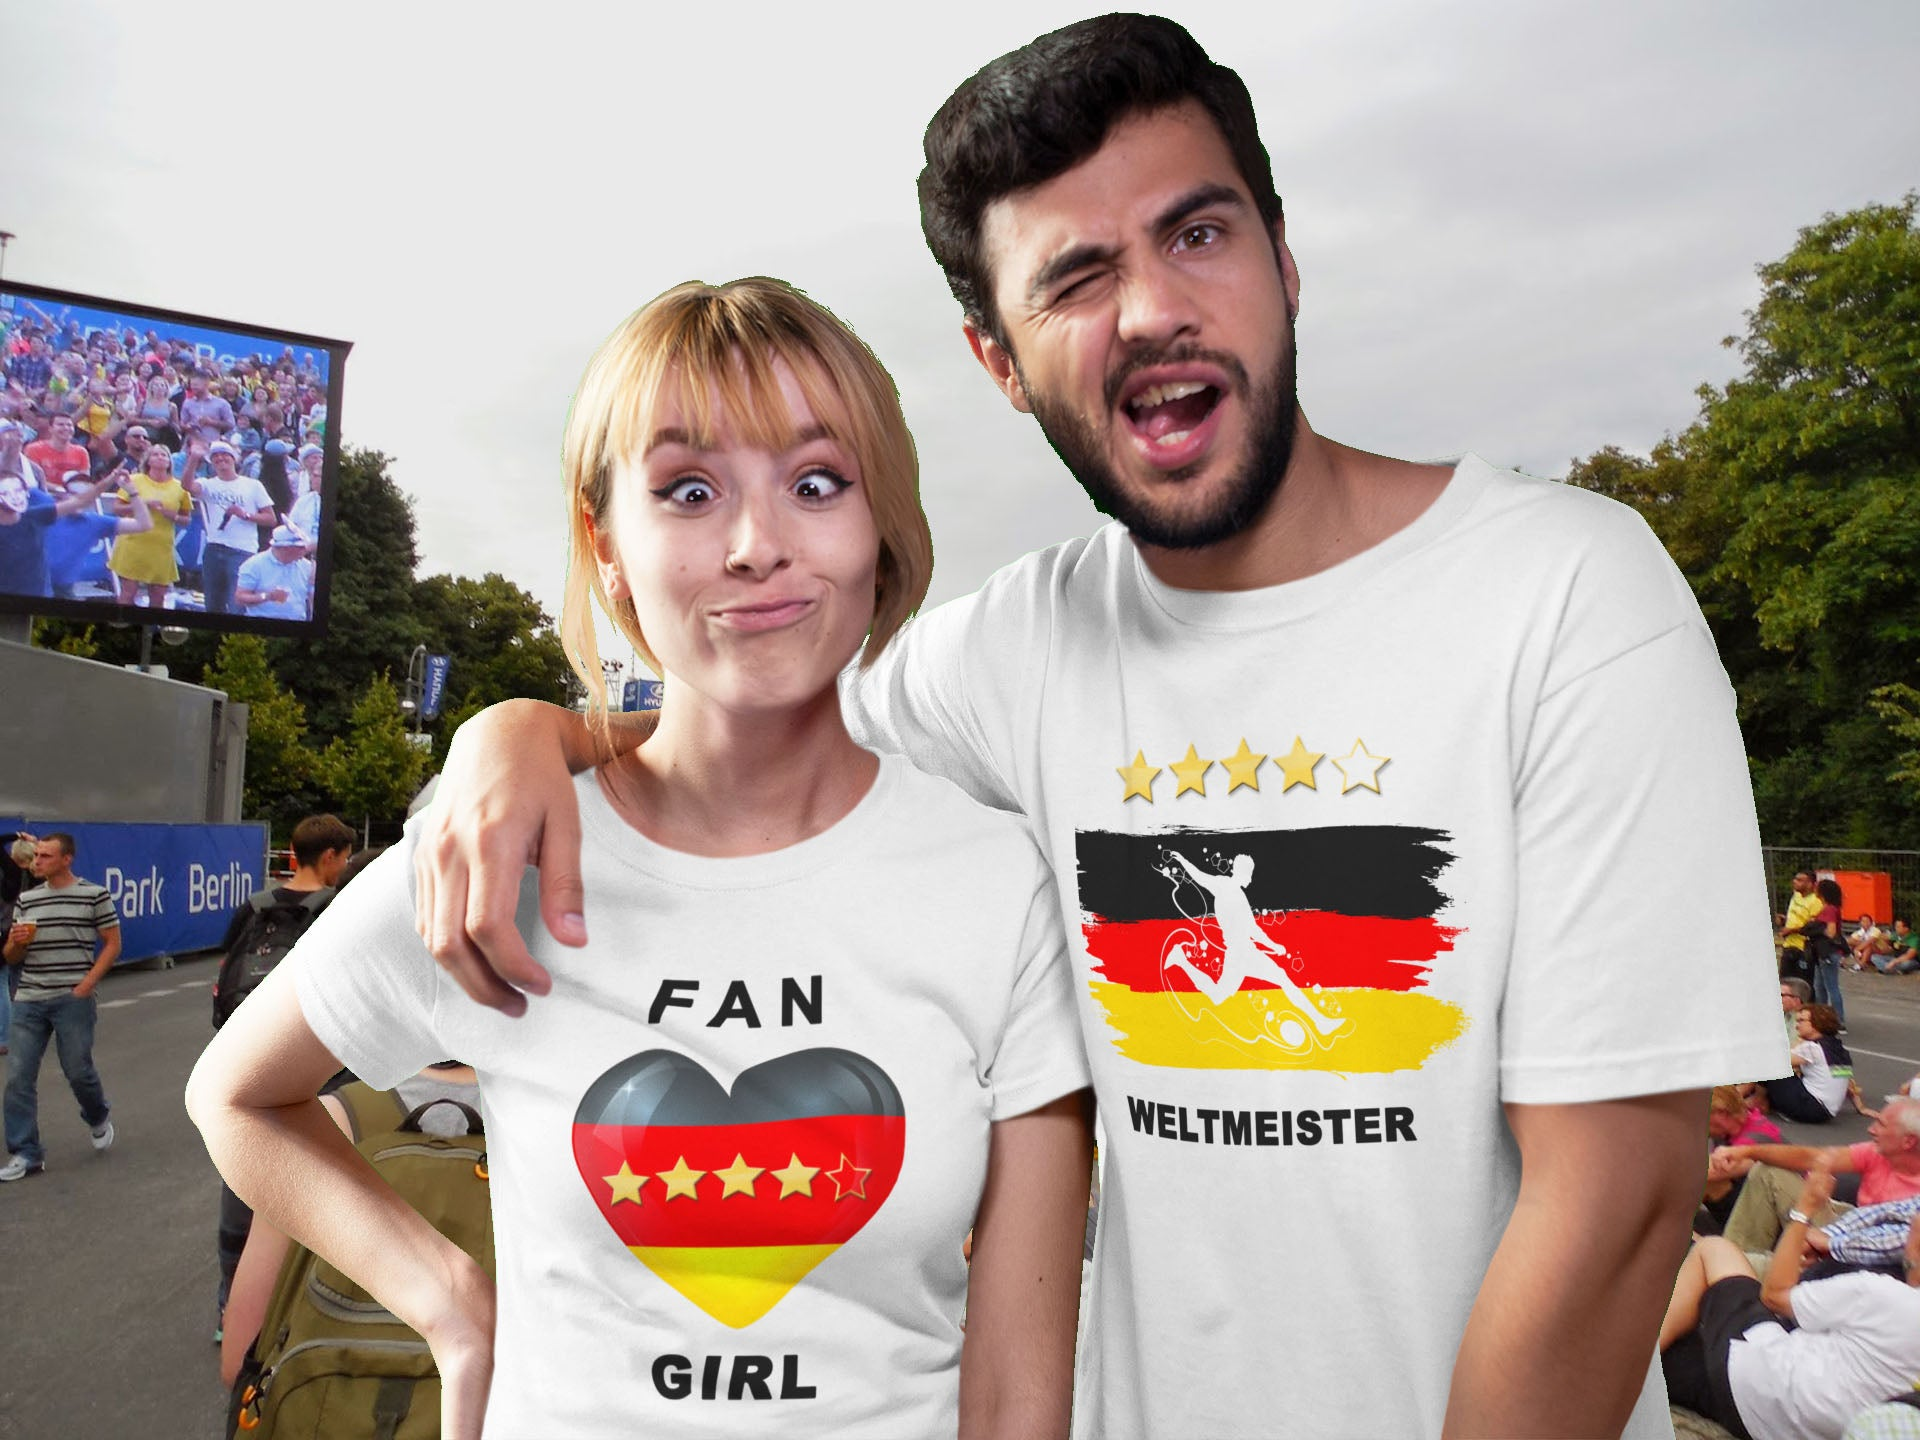 WM - Fan-Girl T-Shirt für Public Viewing - Style4-Nature